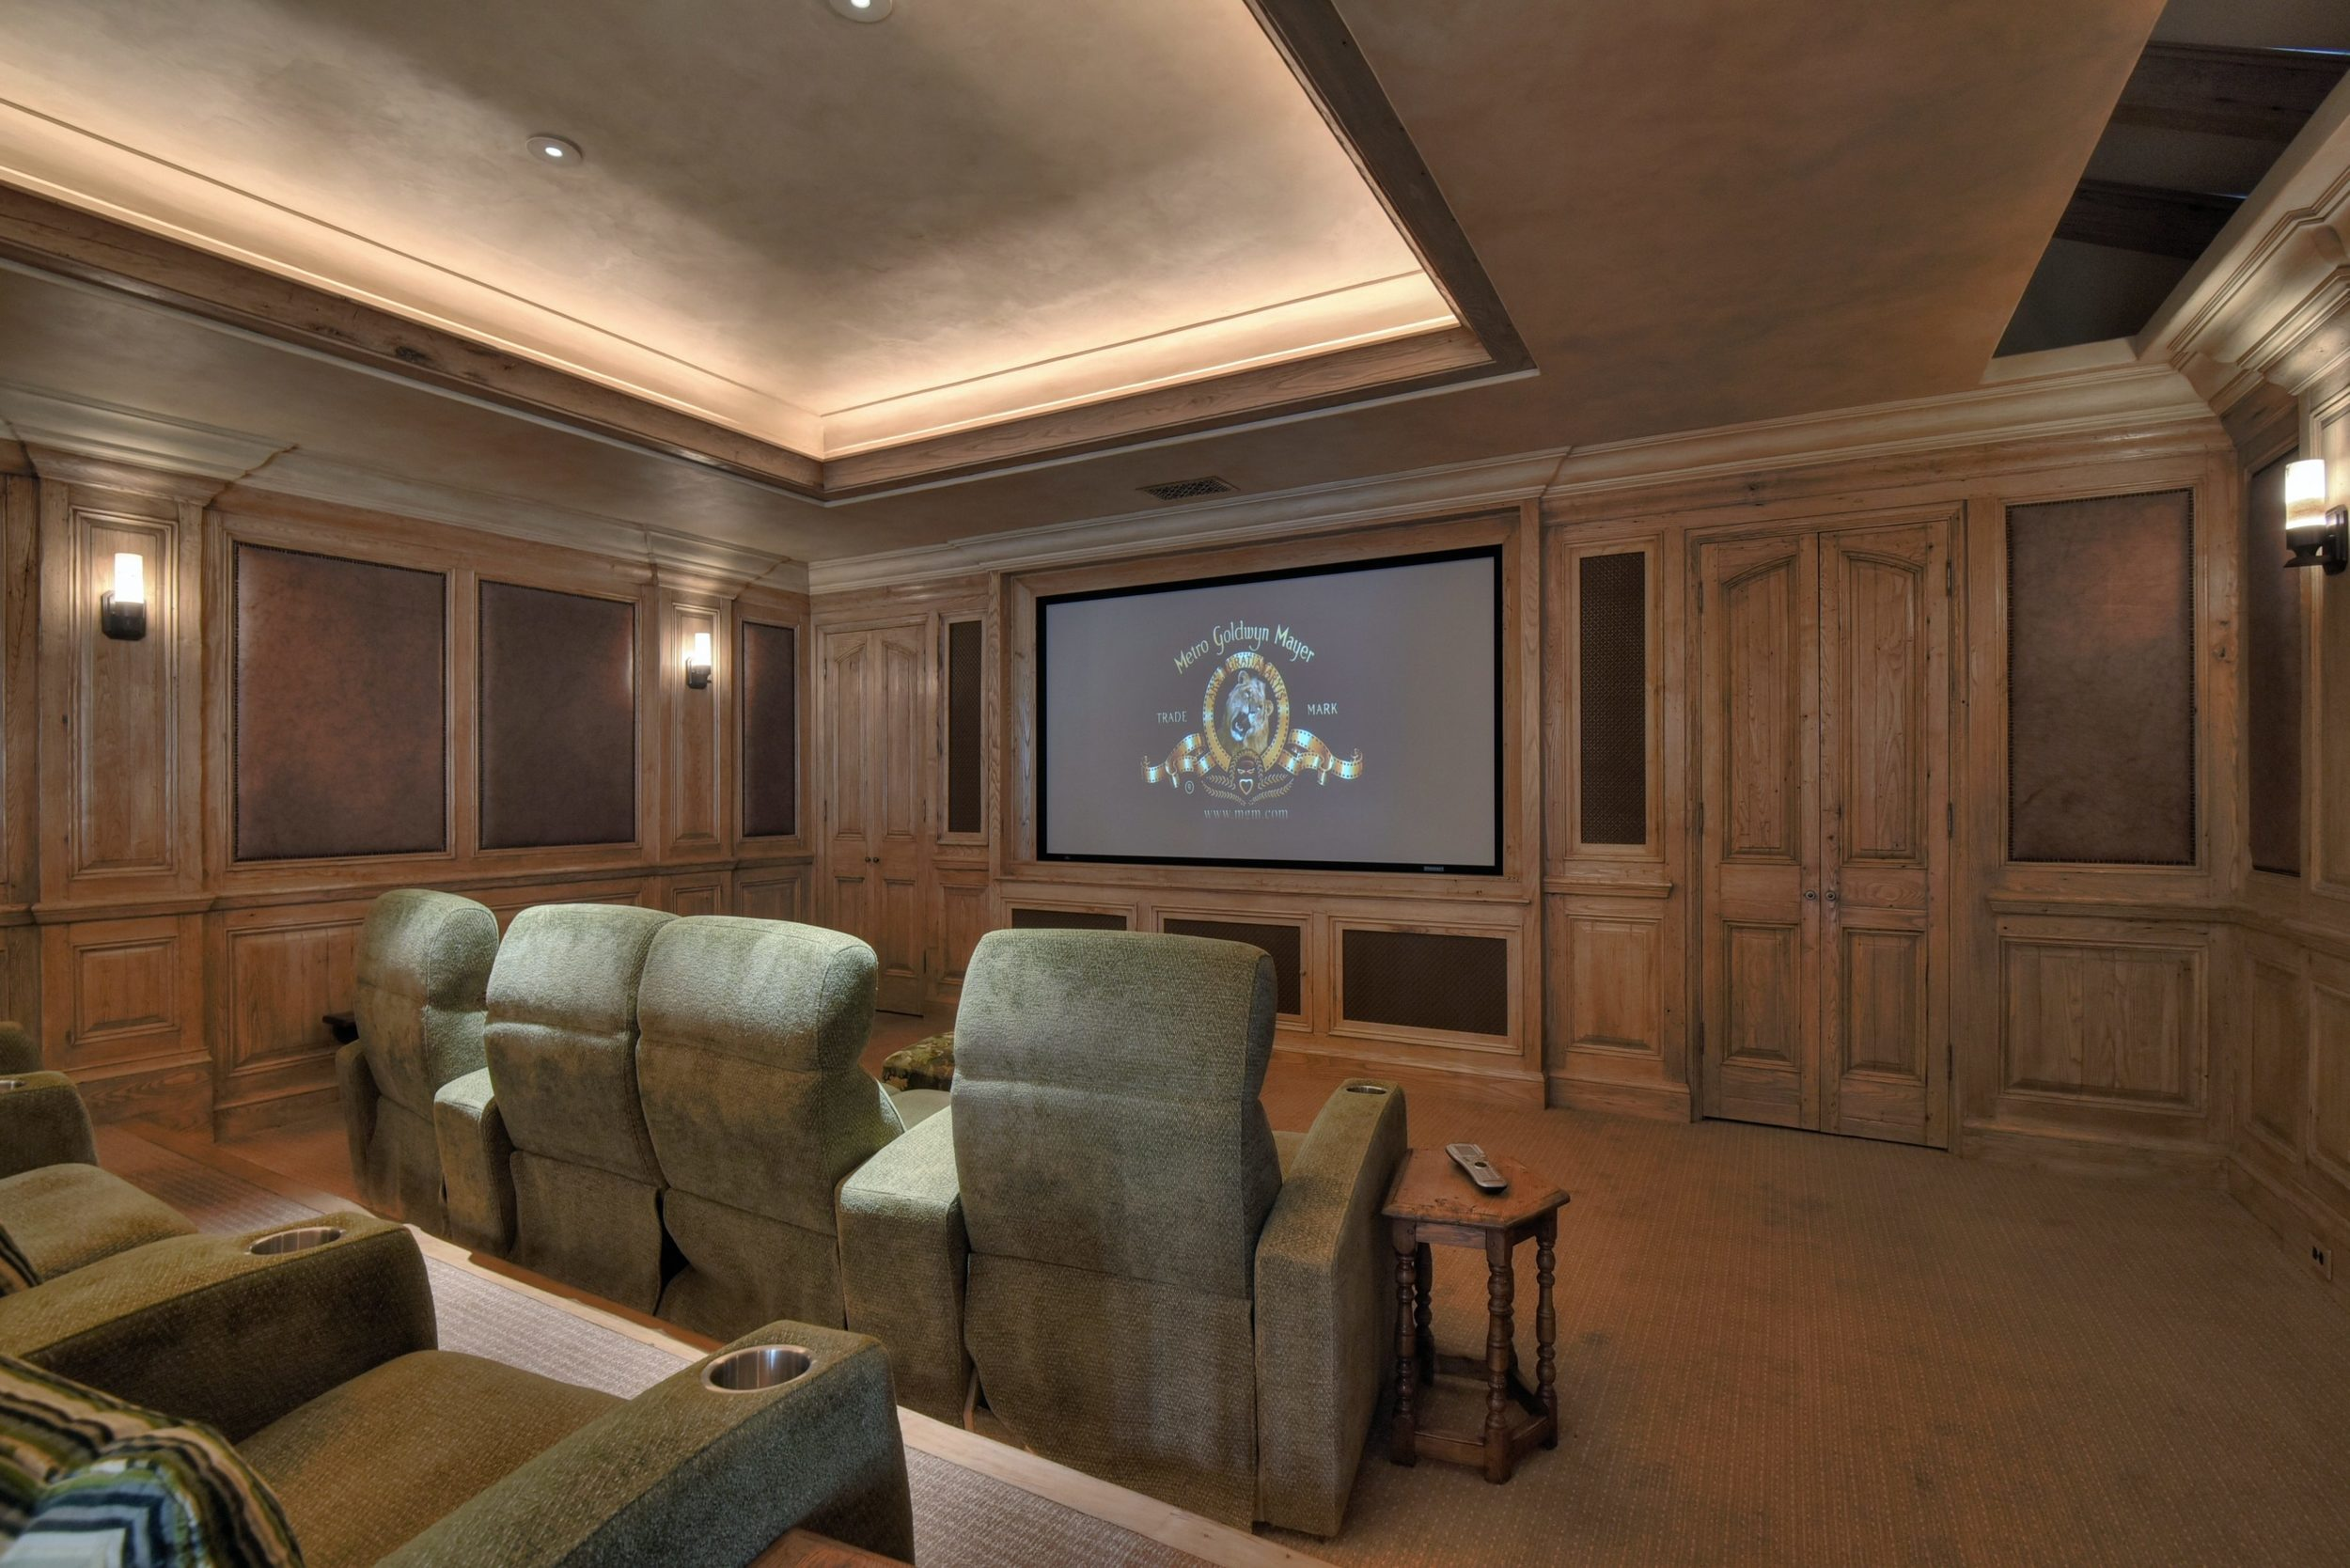 Best Kitchen Gallery: Dedicated Home Theater Immersive Experiences Custom Home Theater of Custom Home Theater Design  on rachelxblog.com